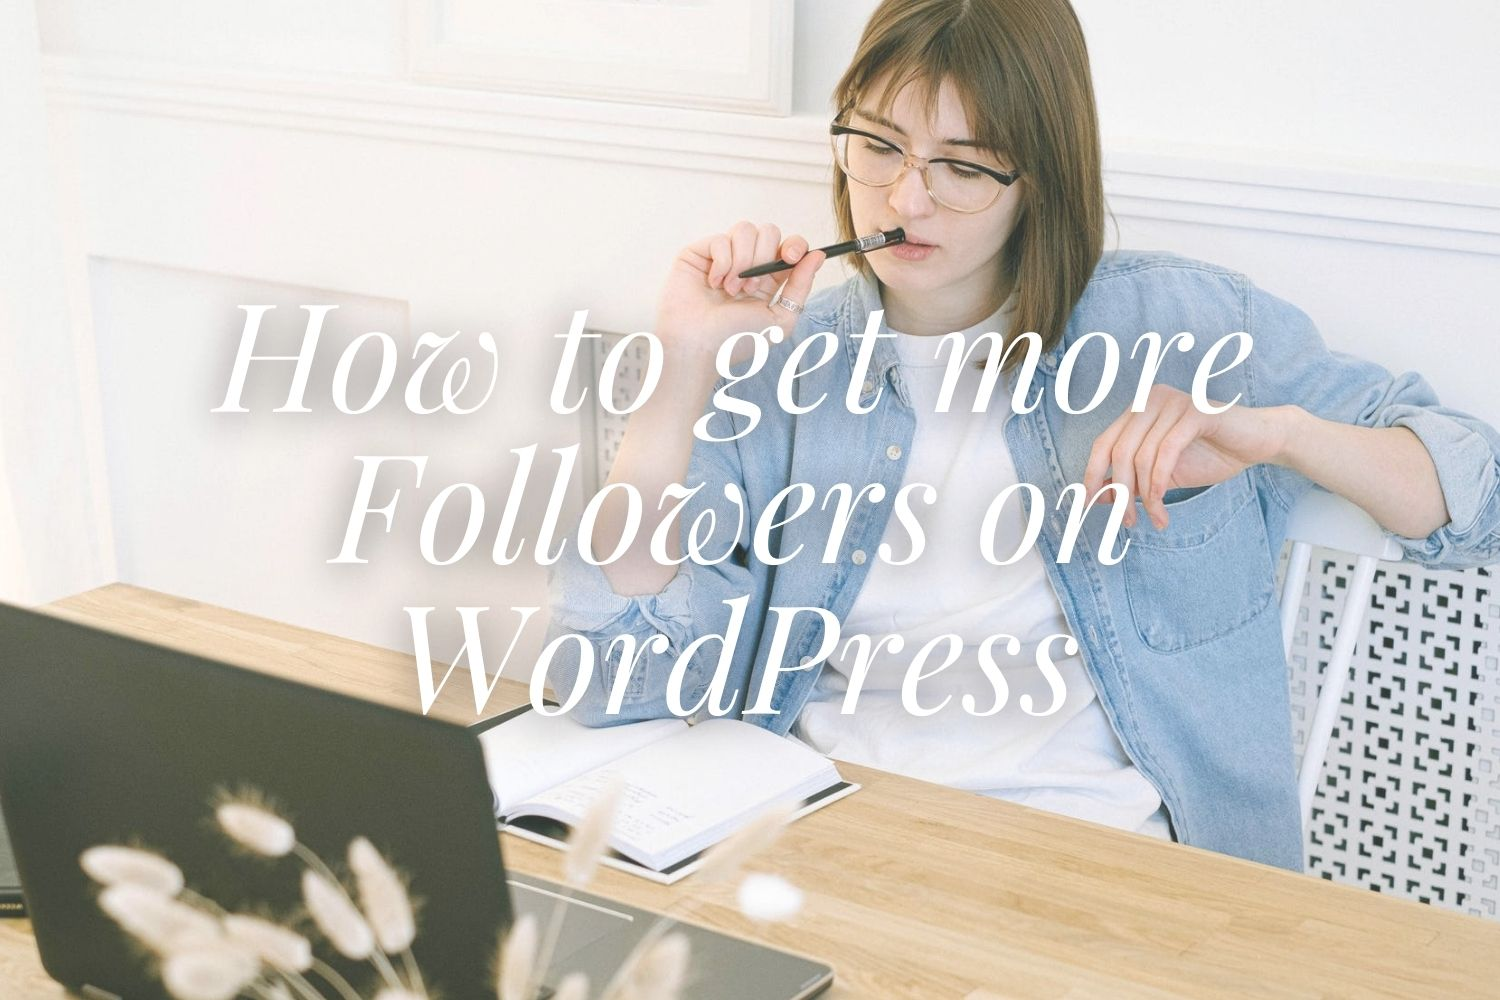 How to get more Followers on WordPress